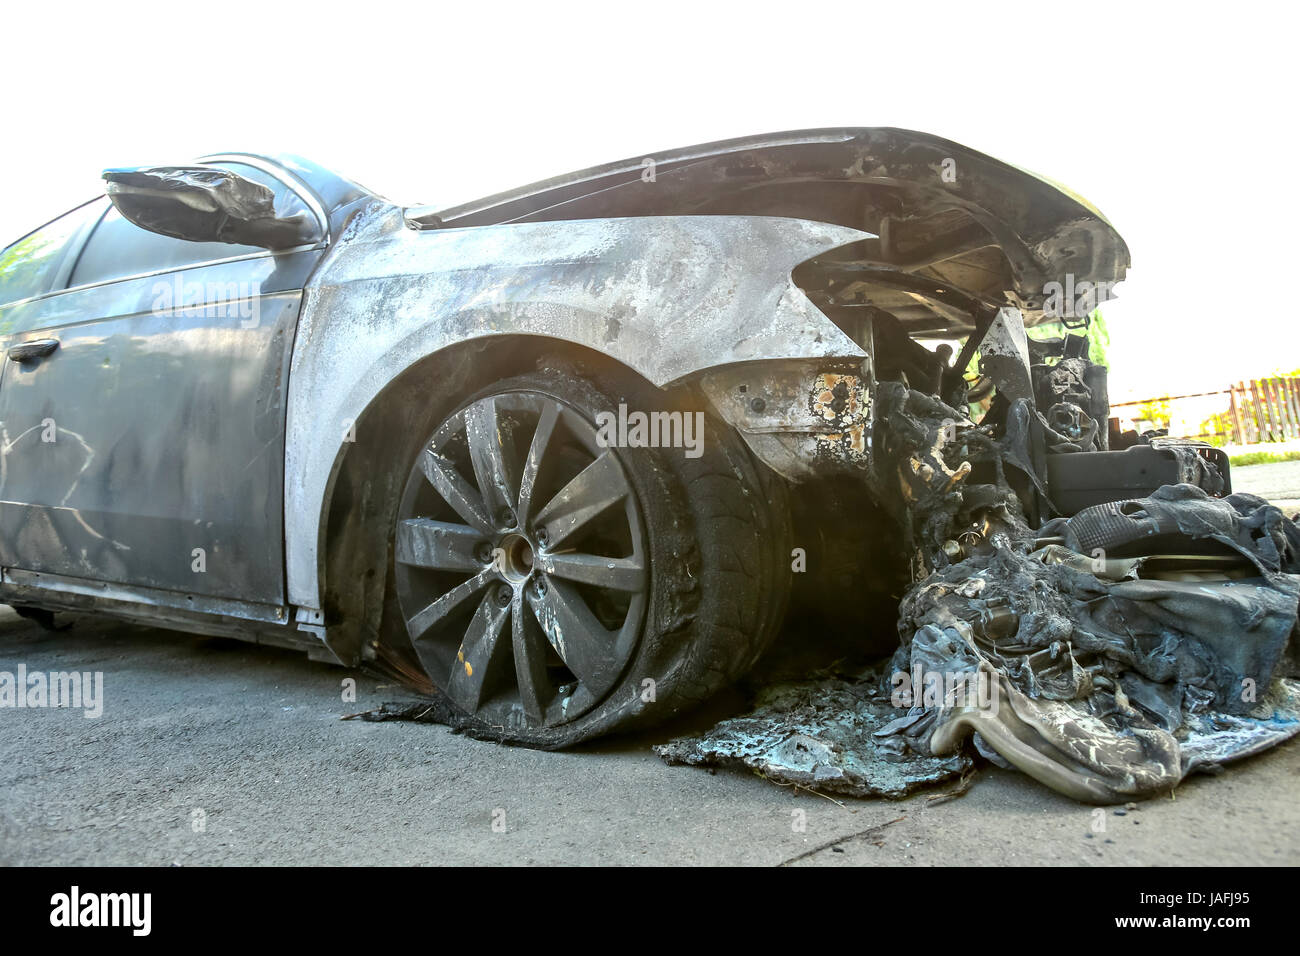 The exterior of a burned out car. - Stock Image